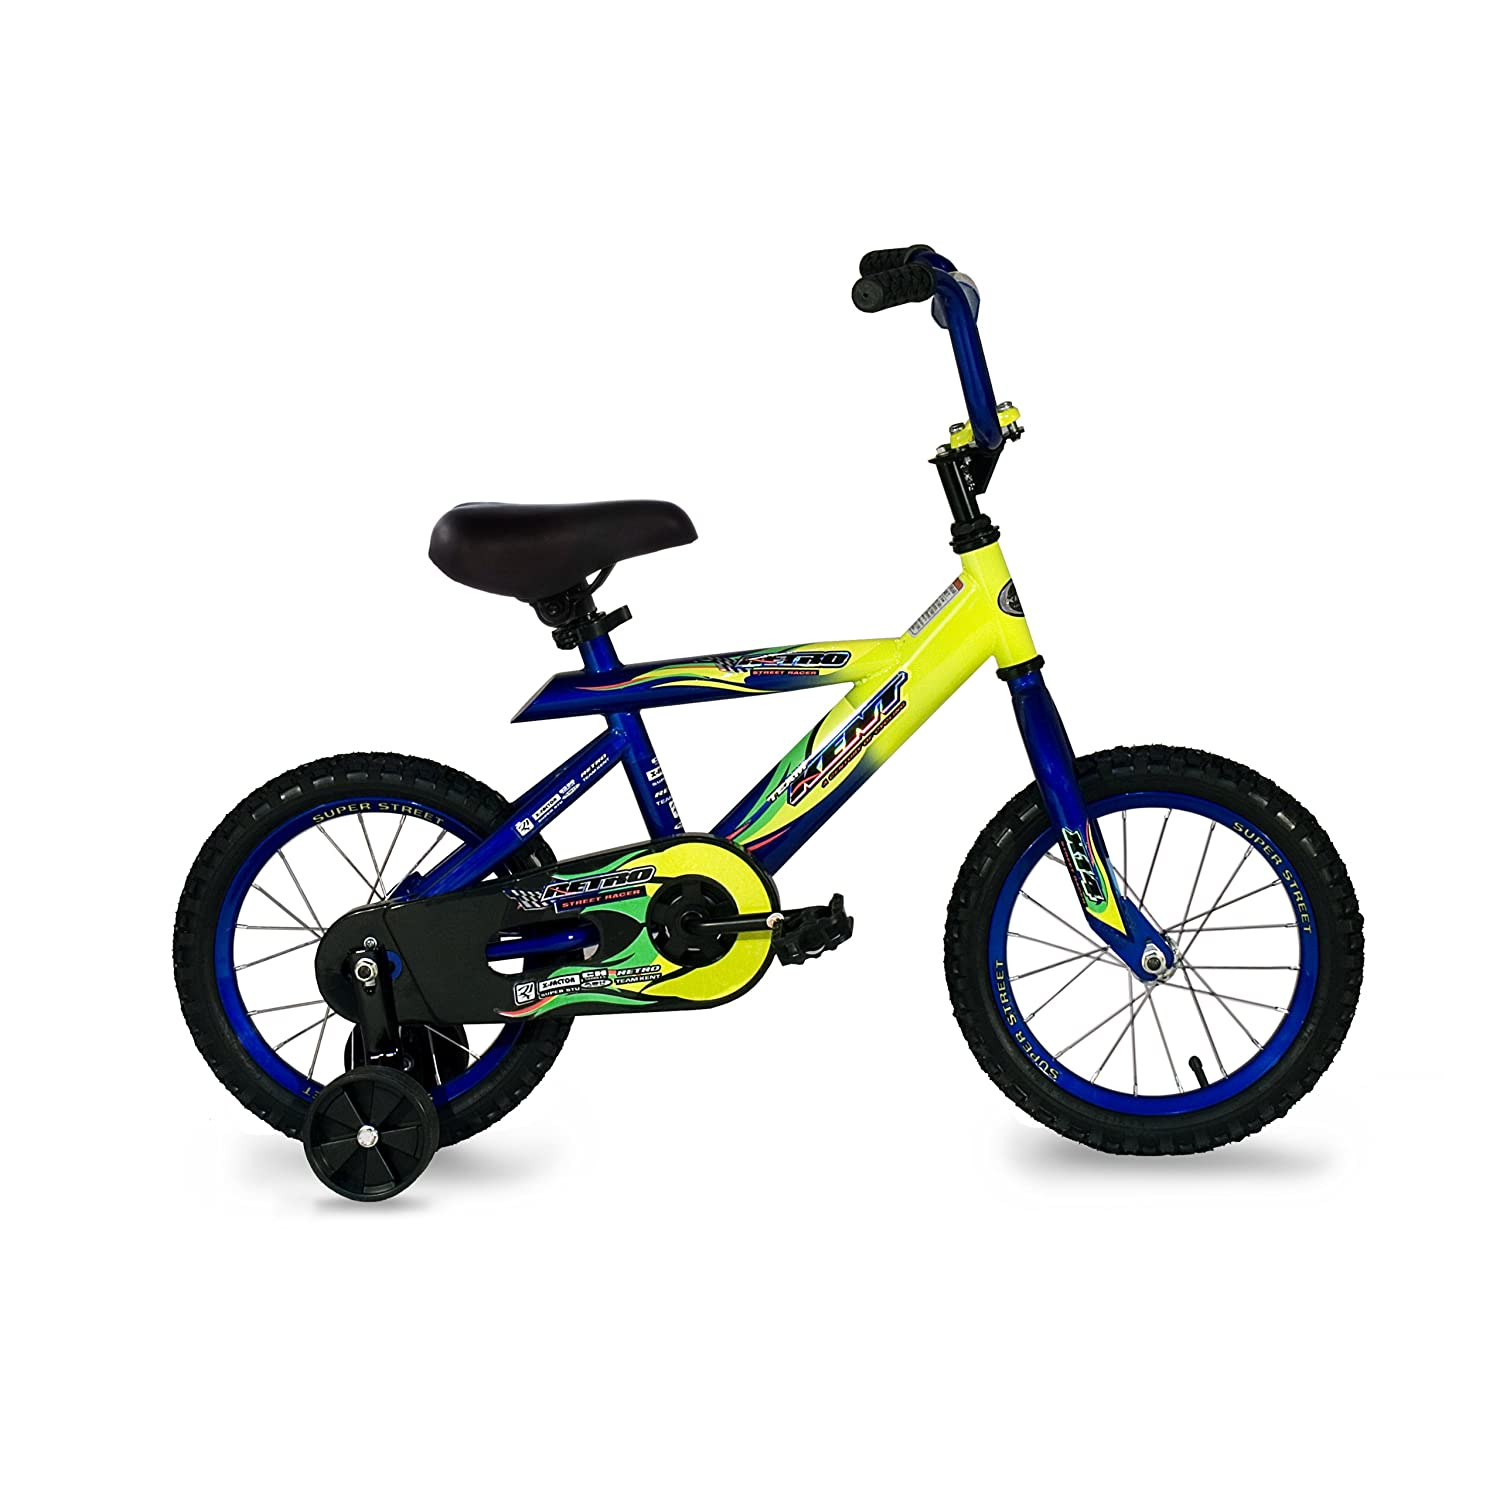 Bike 14 Inch Boys Kent Retro Boy s Bike Inch